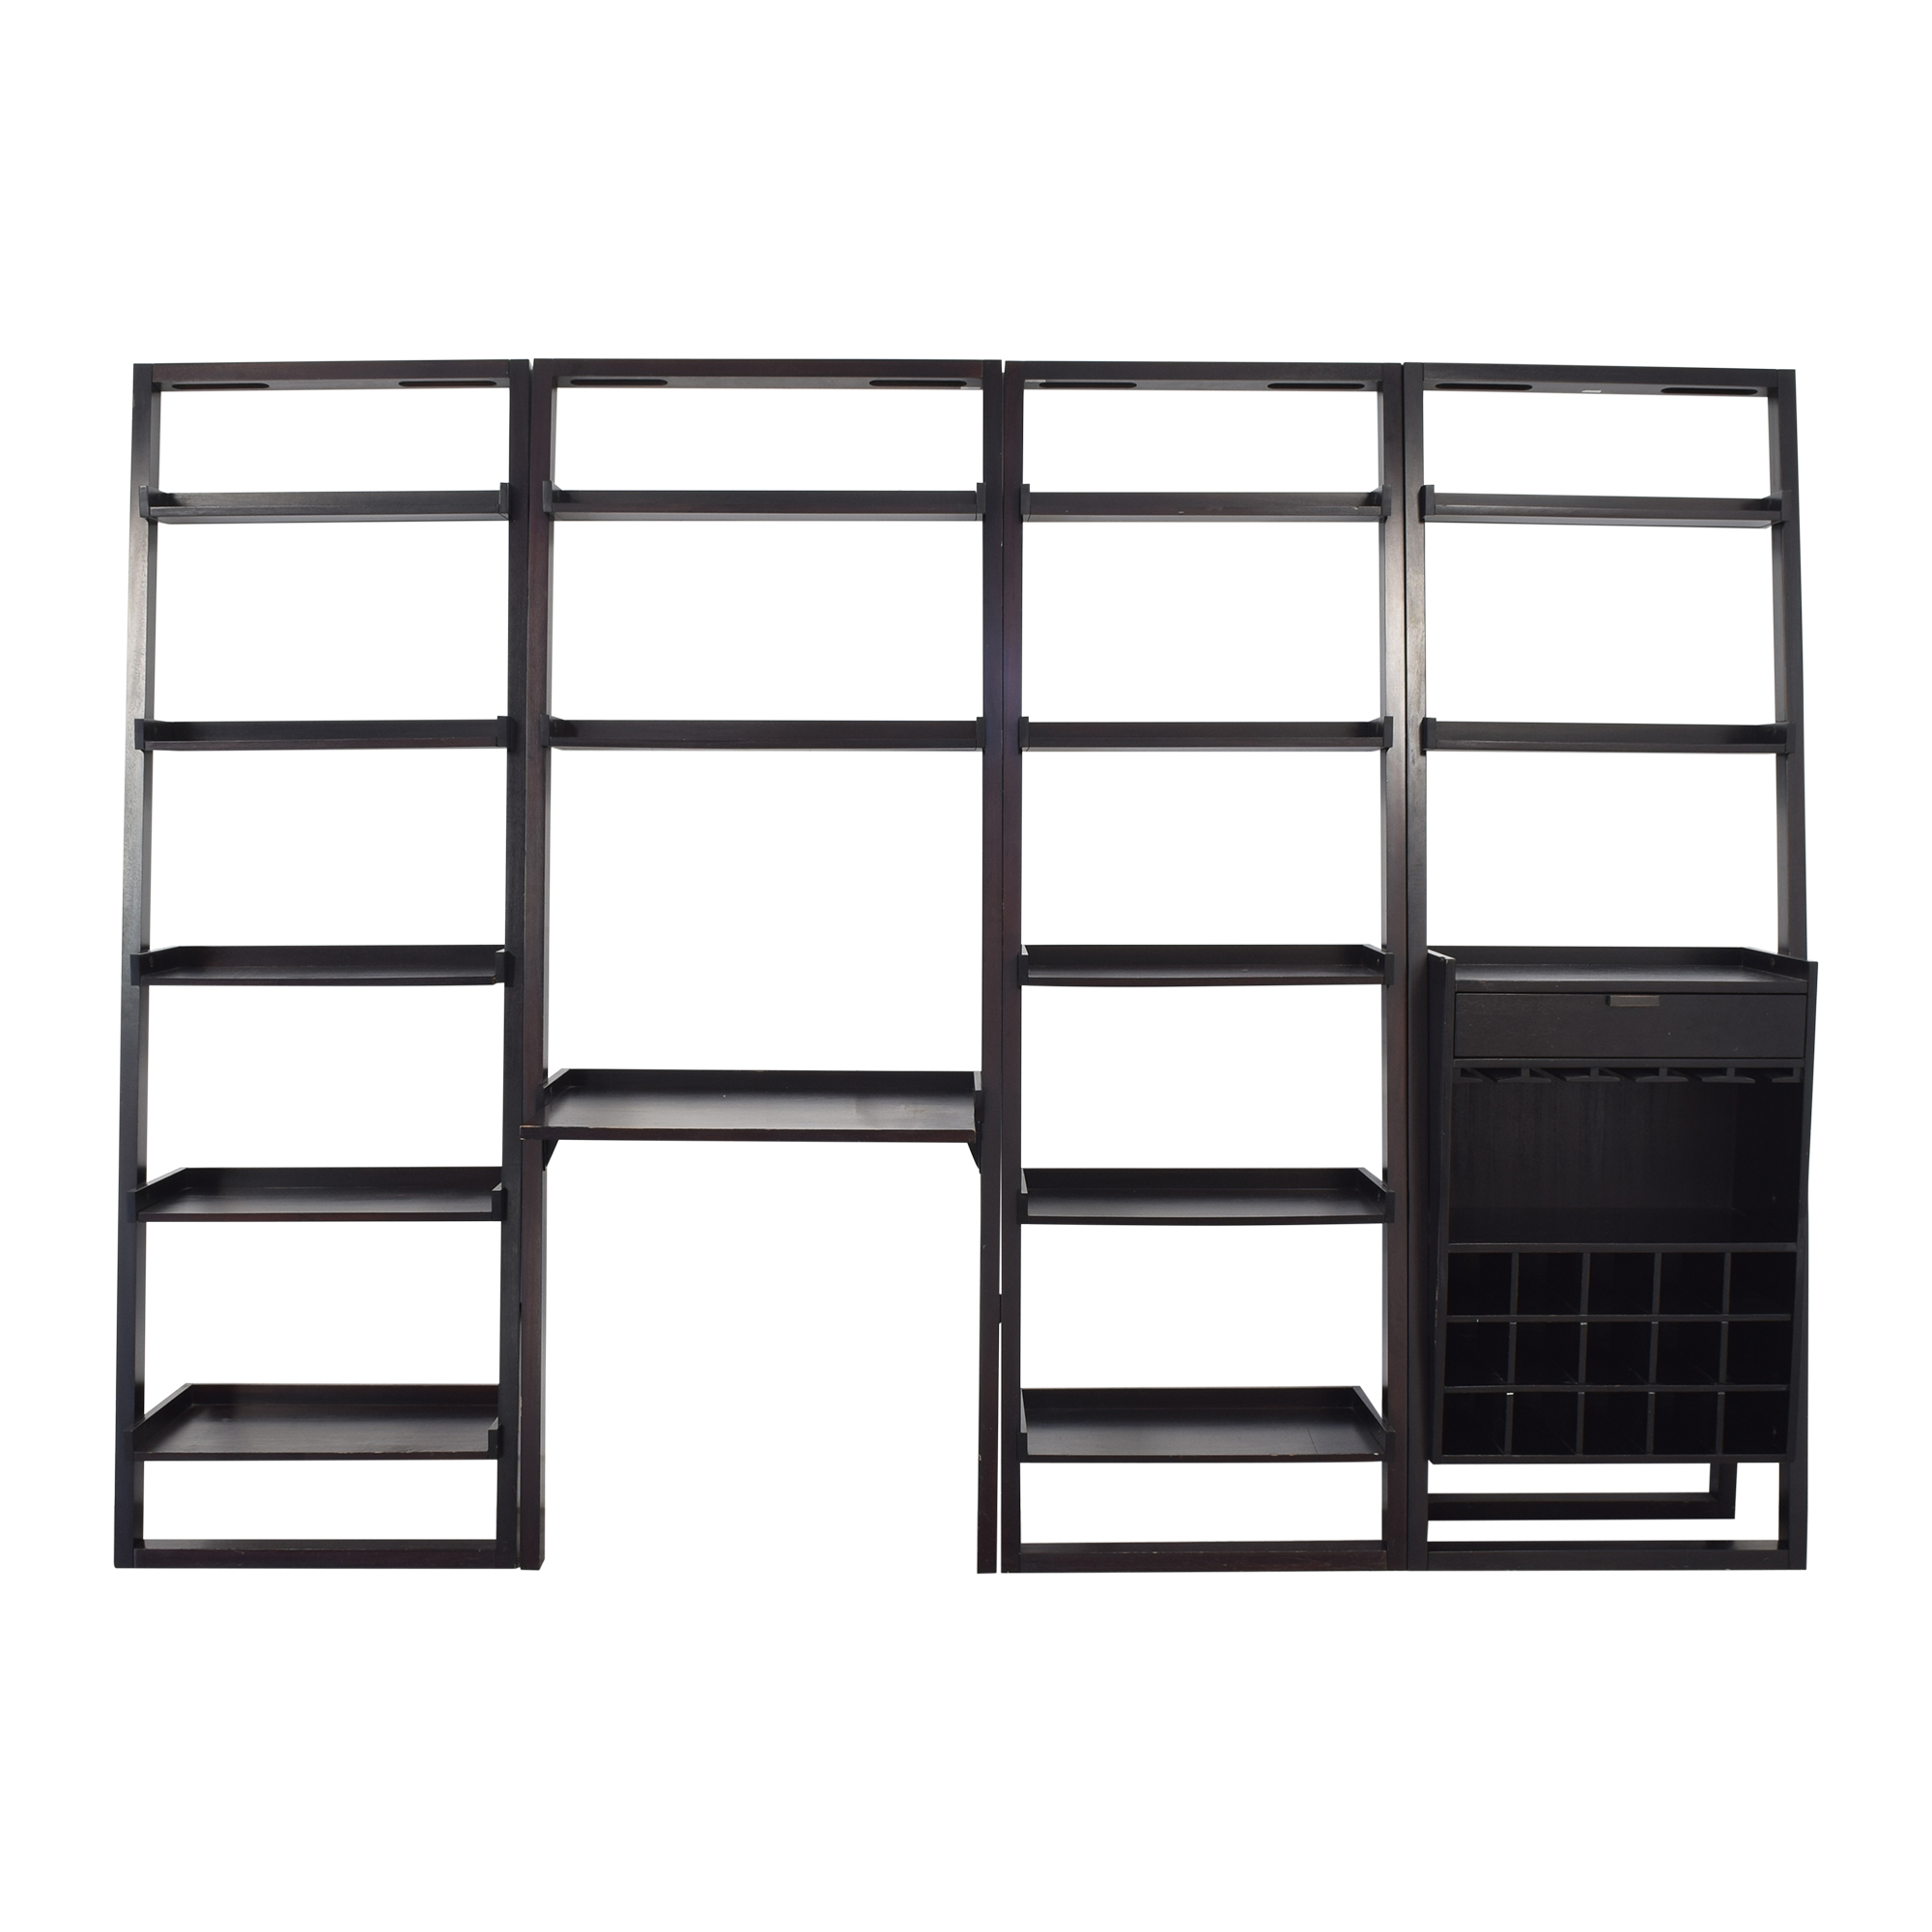 Crate & Barrel Sloane Leaning Bookshelves with Desk / Bookcases & Shelving